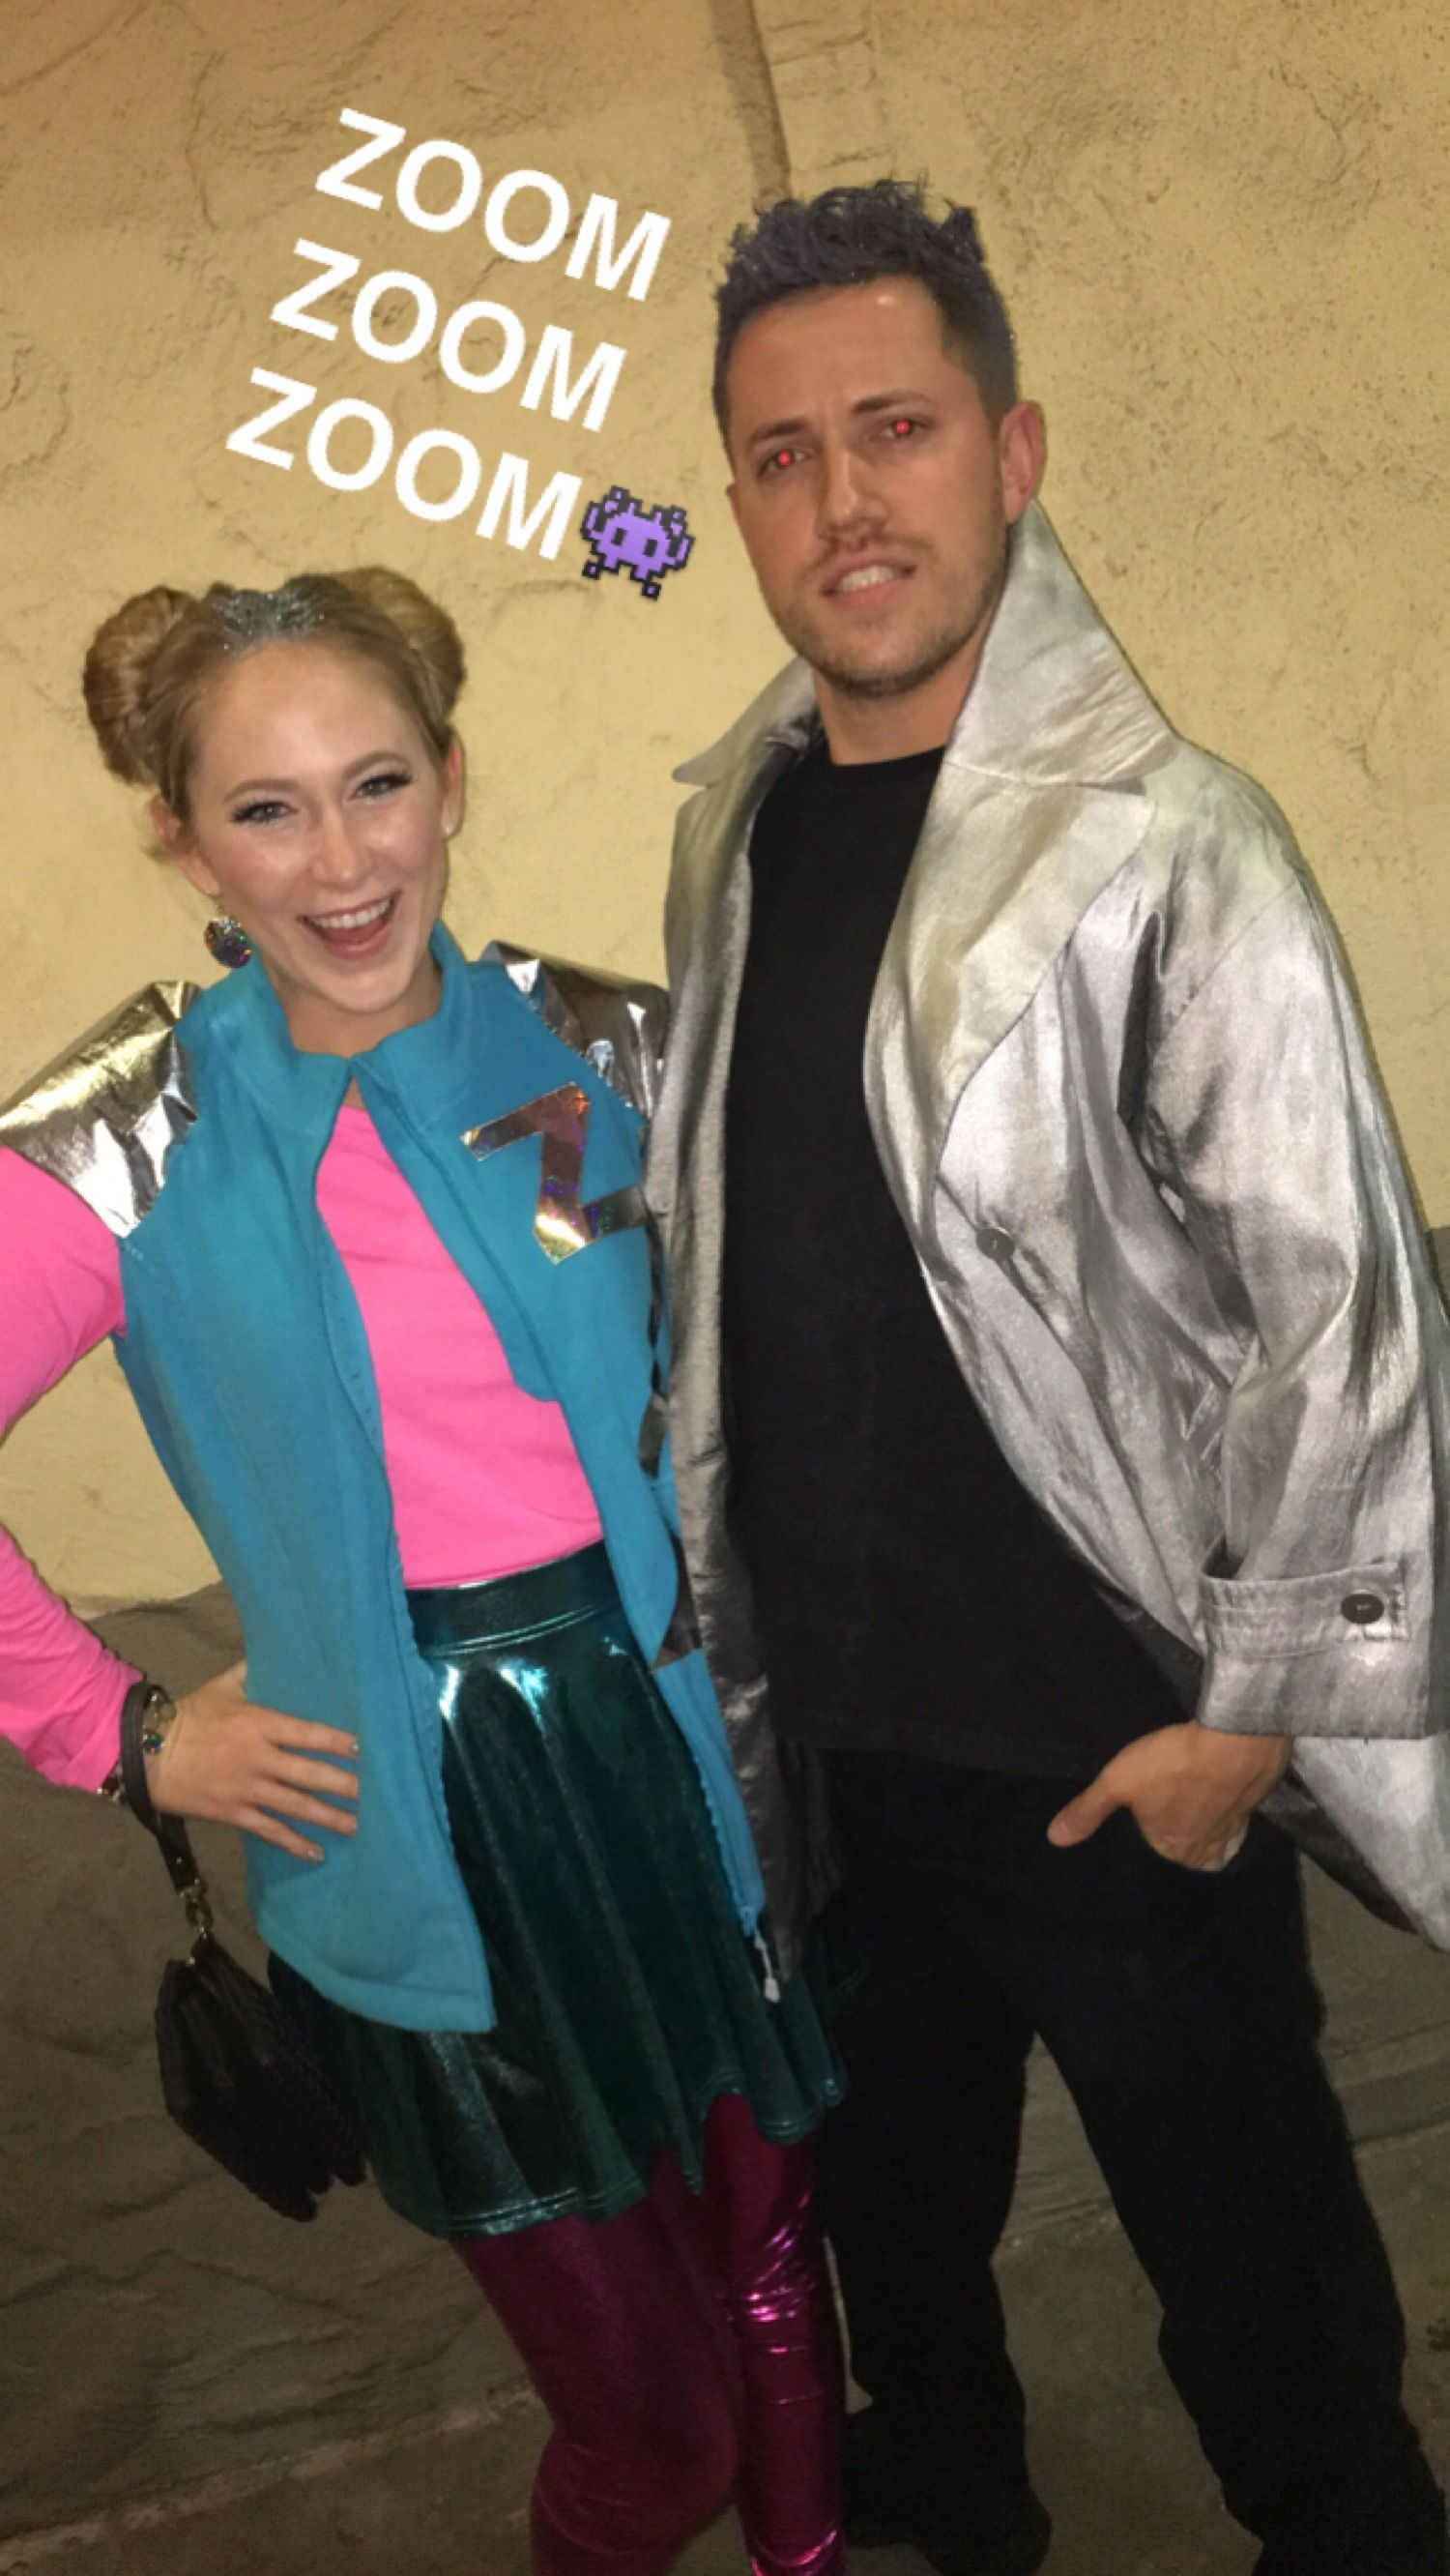 Zenon and Protozoa costumes zenon girl of the 21st century 90s couple costume  sc 1 st  Pinterest : 90s couples costume ideas  - Germanpascual.Com